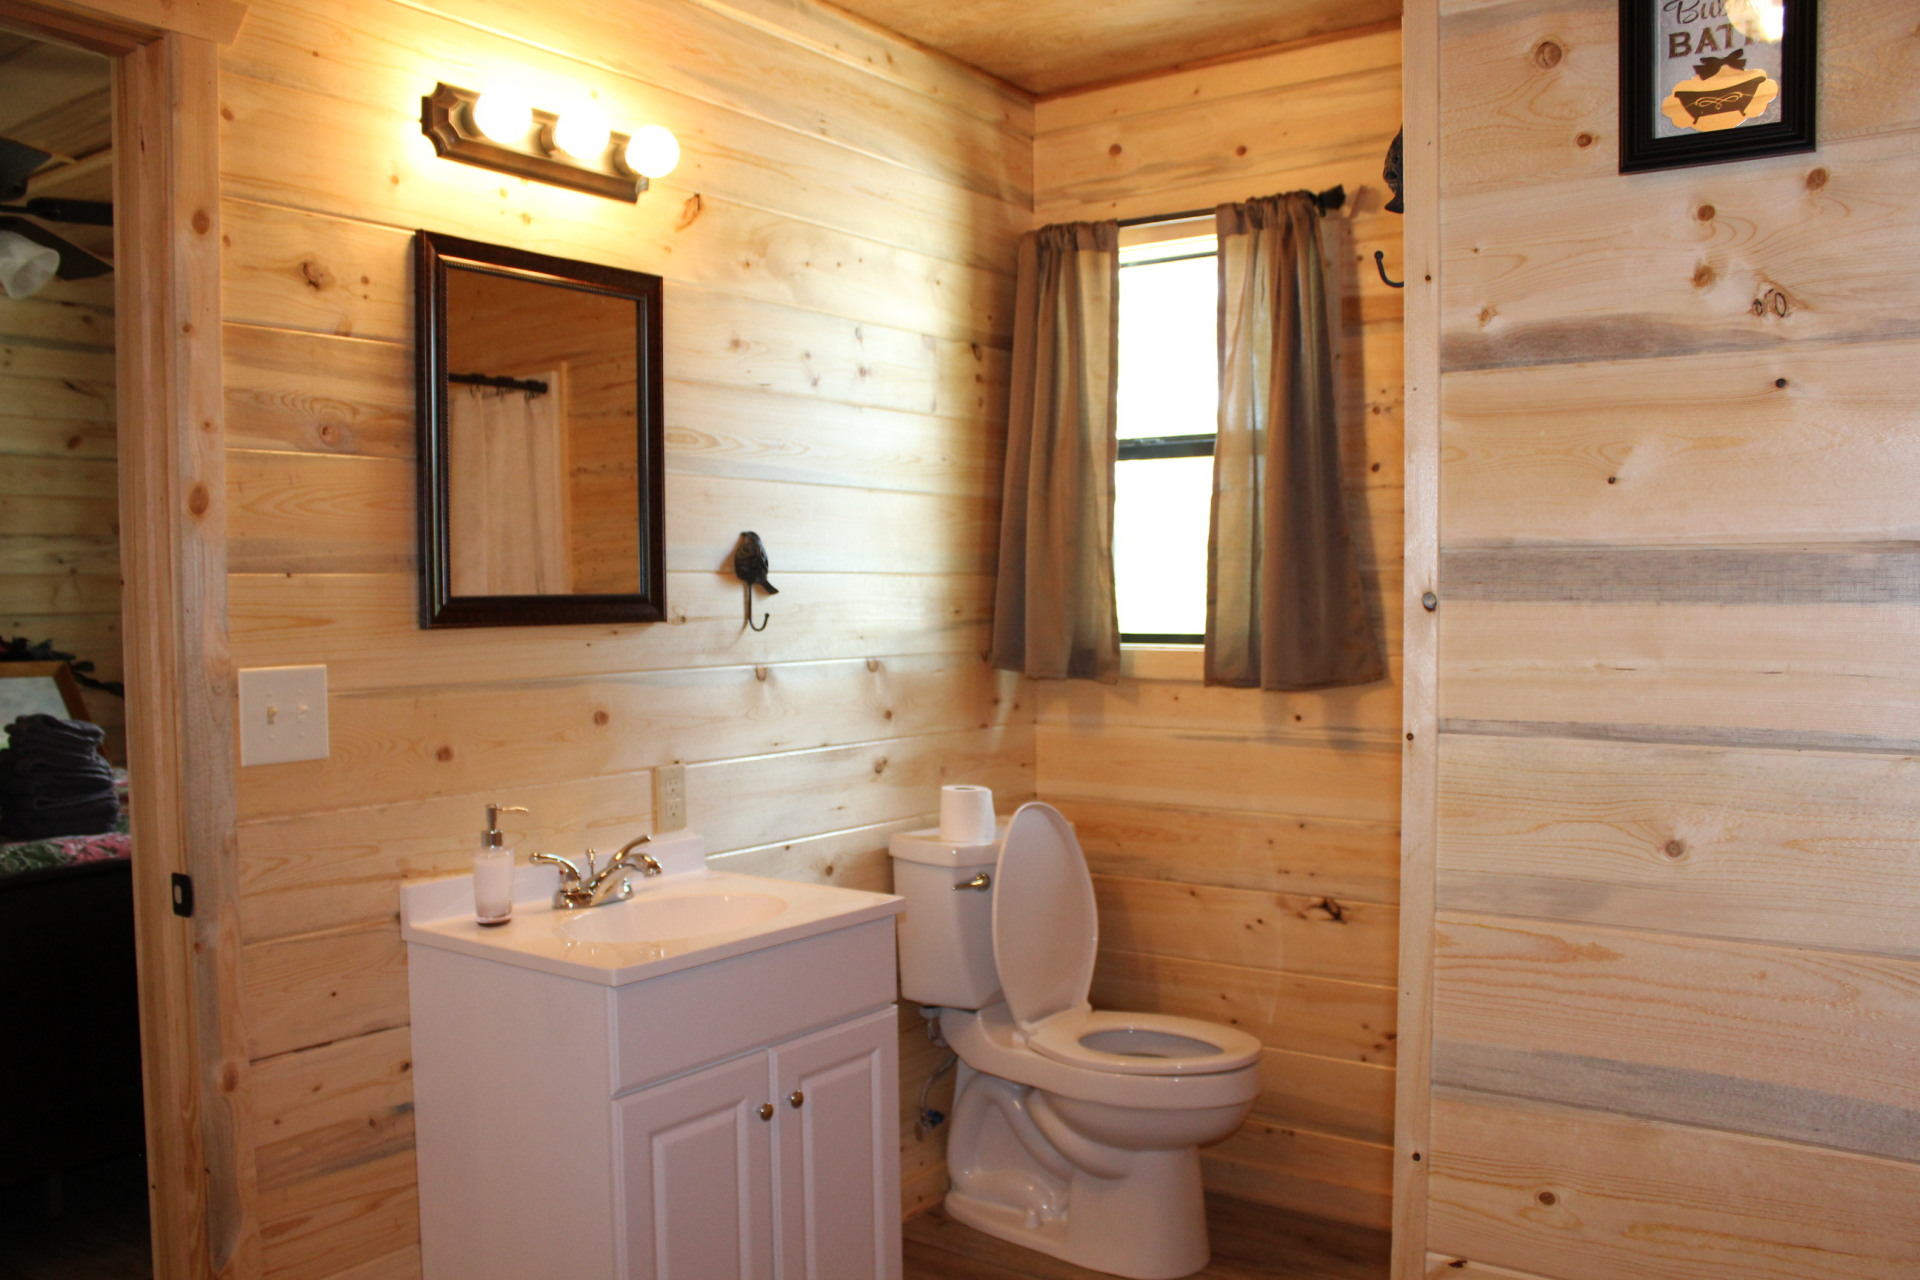 Jack and Jill bathroom